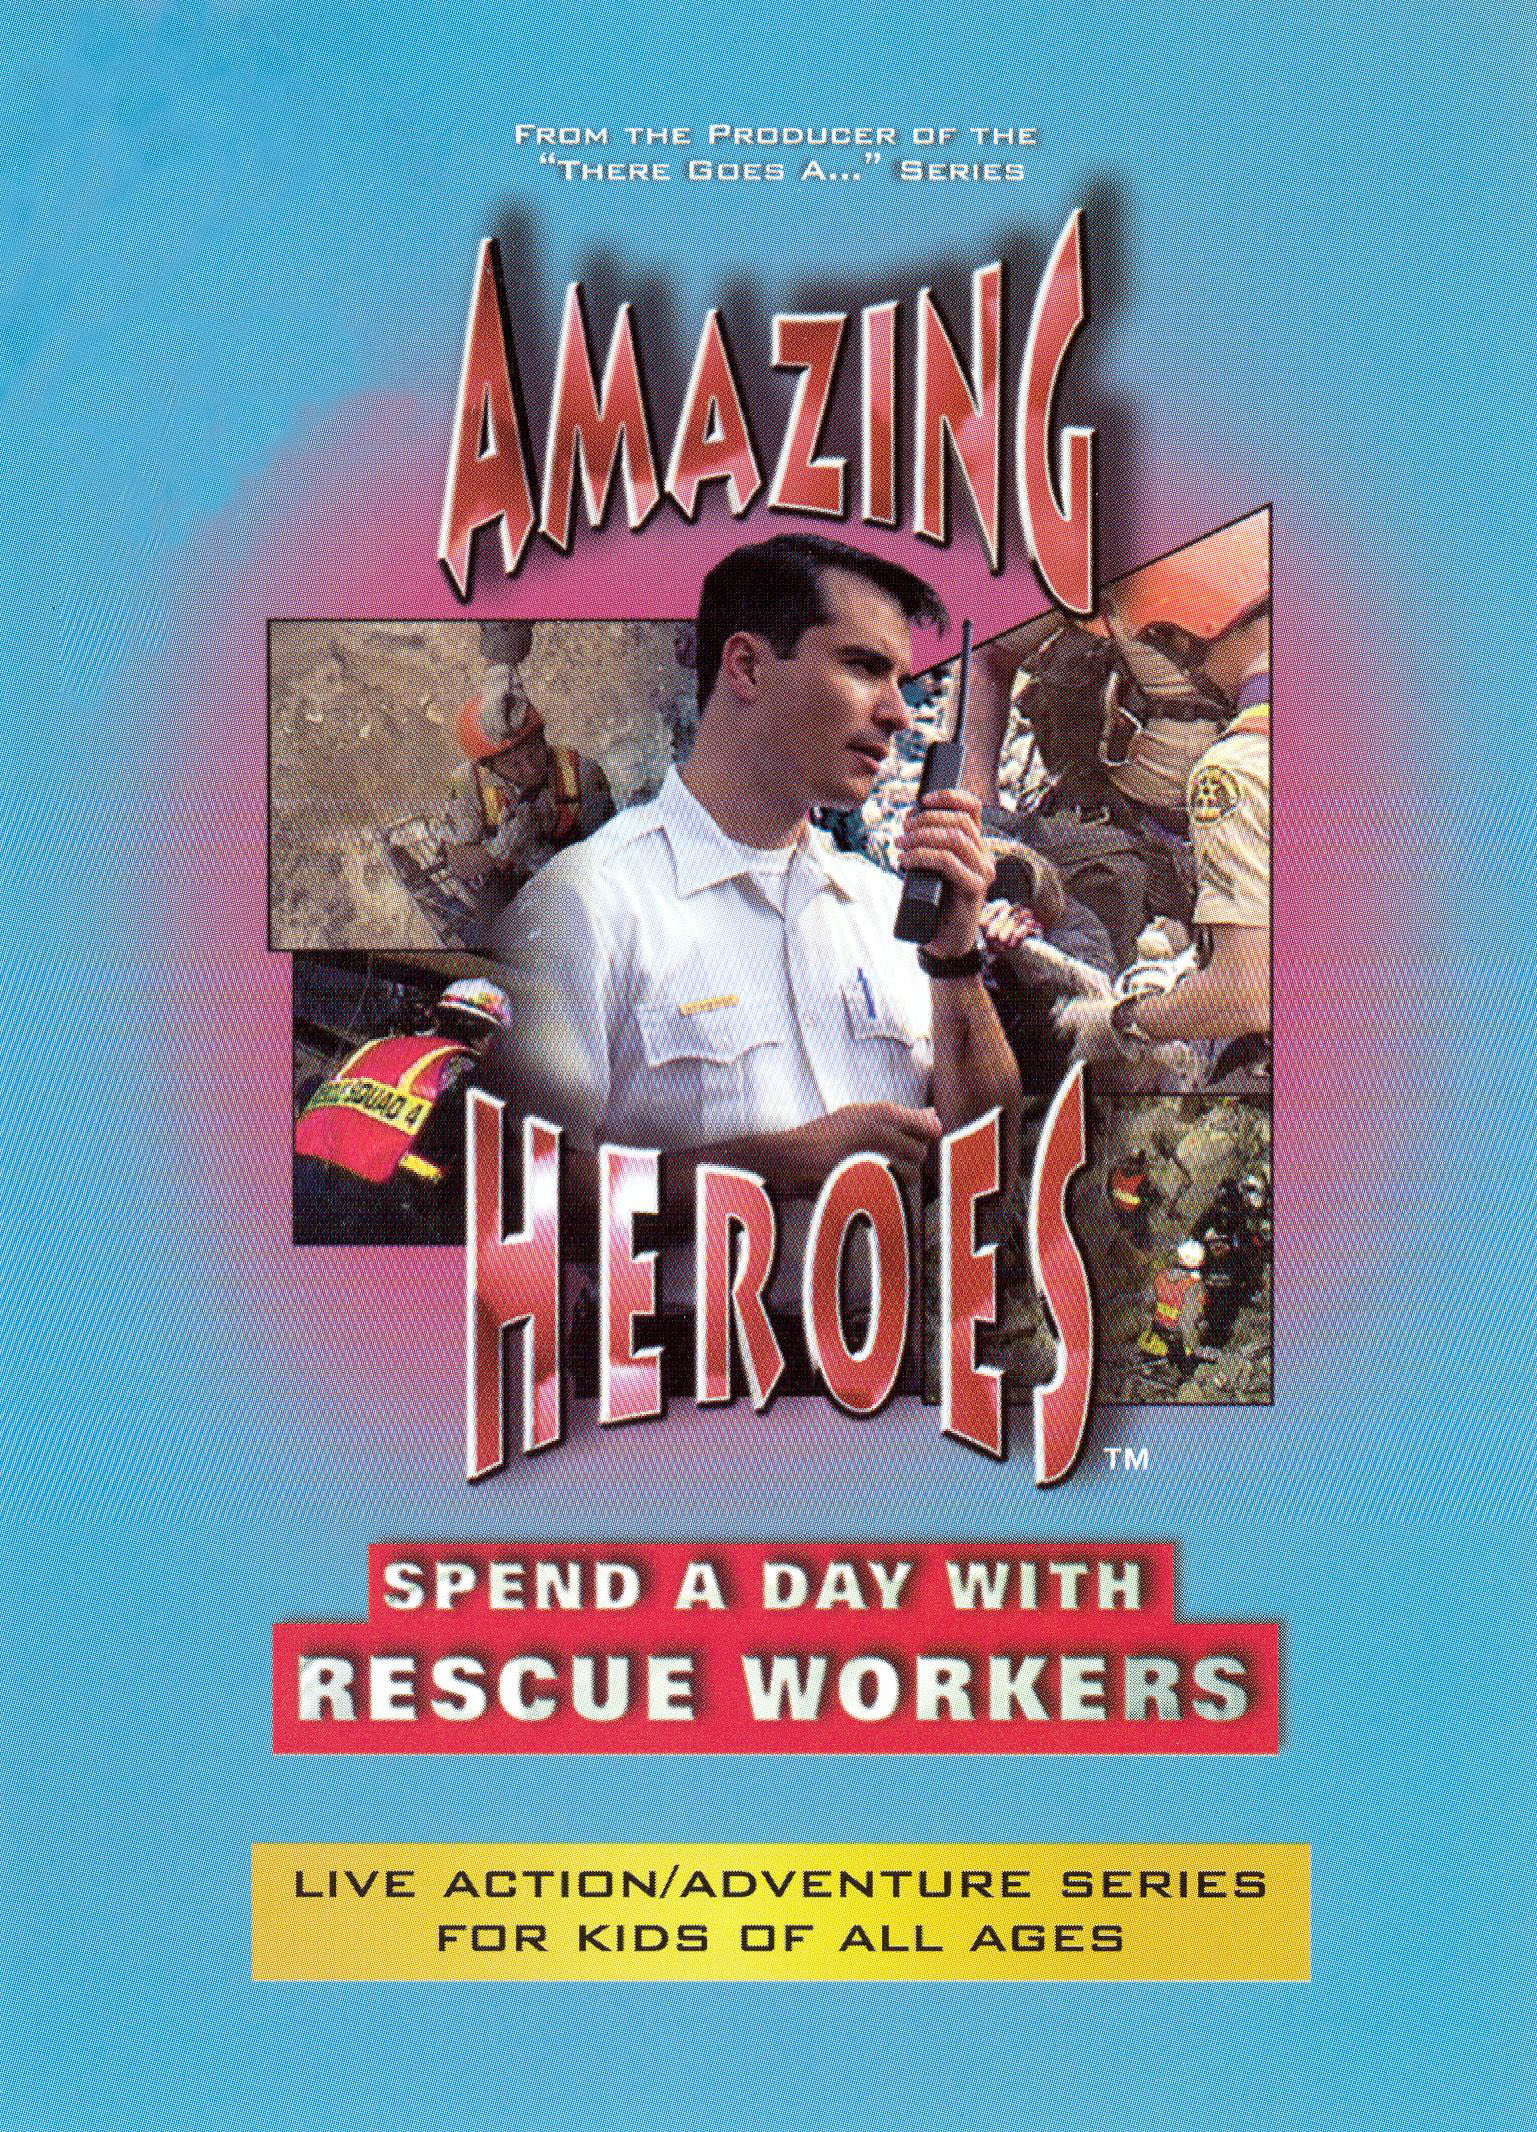 Amazing Heroes: Spend a Day with Rescue Workers